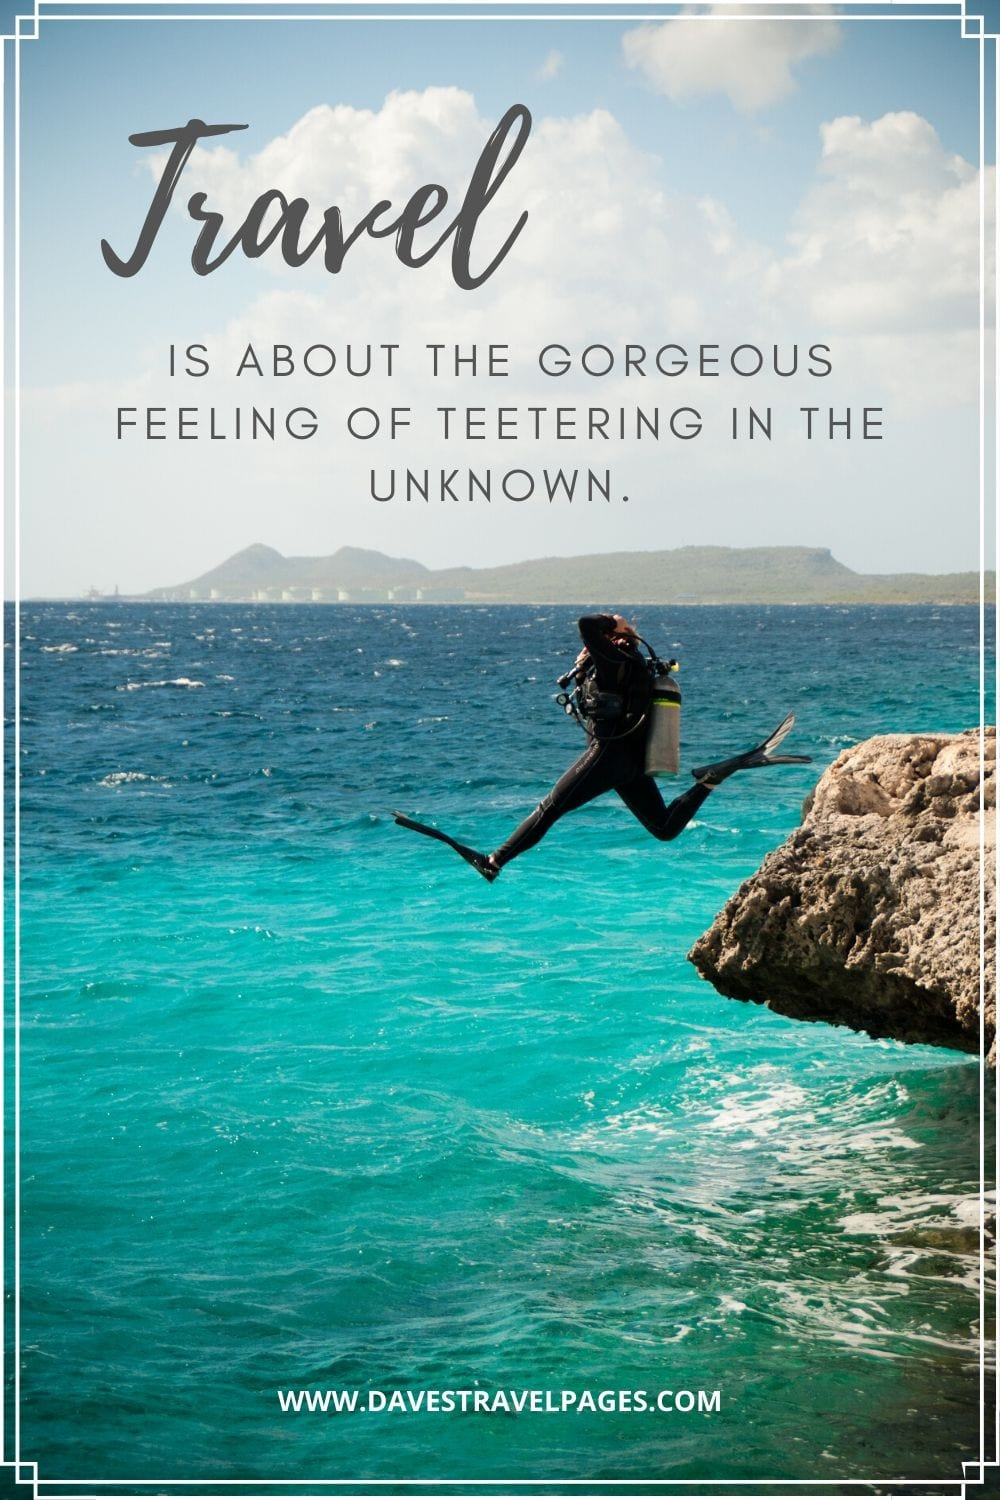 """Travel quote by Anthony Bourdain: """"Travel is about the gorgeous feeling of teetering in the unknown."""""""